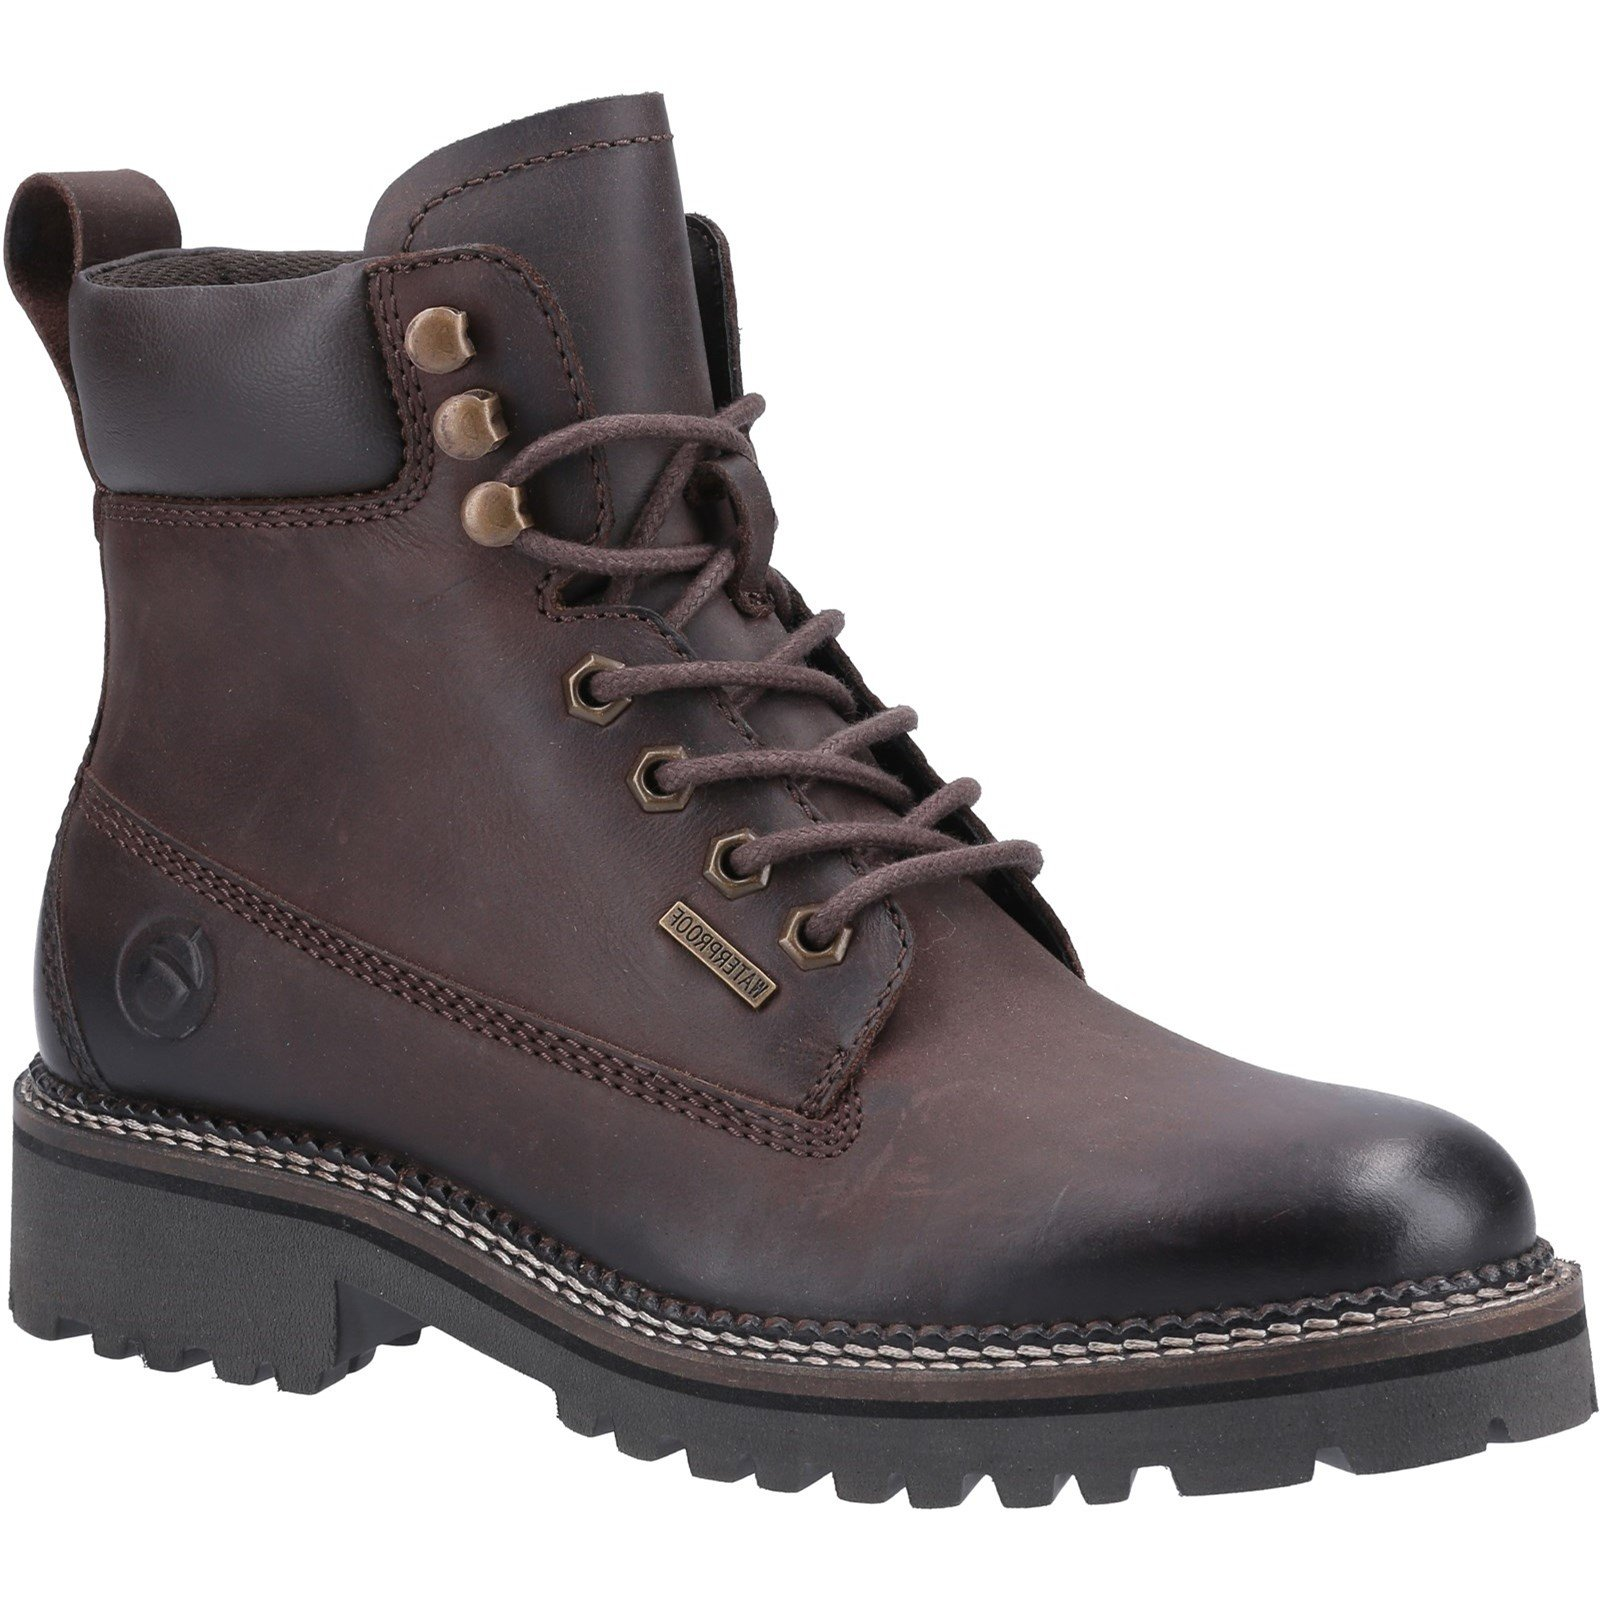 Cotswold Women's Chipping High Top Lace Up Ankle Boot Various Colours 32974 - Brown 5